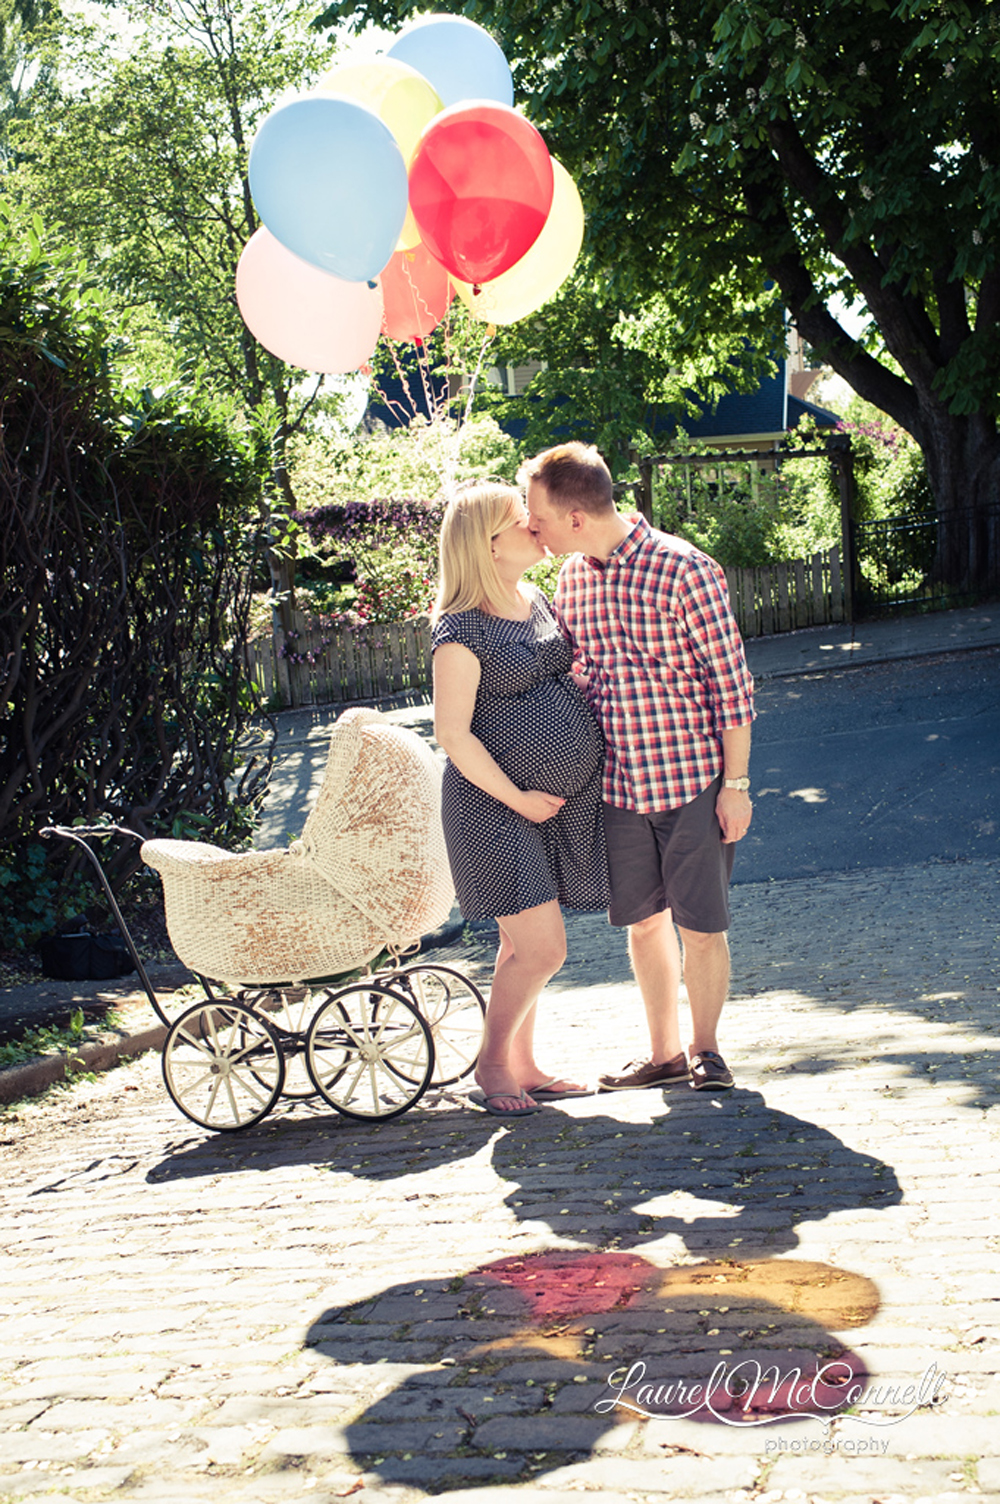 Fun balloon maternity photography Seattle.